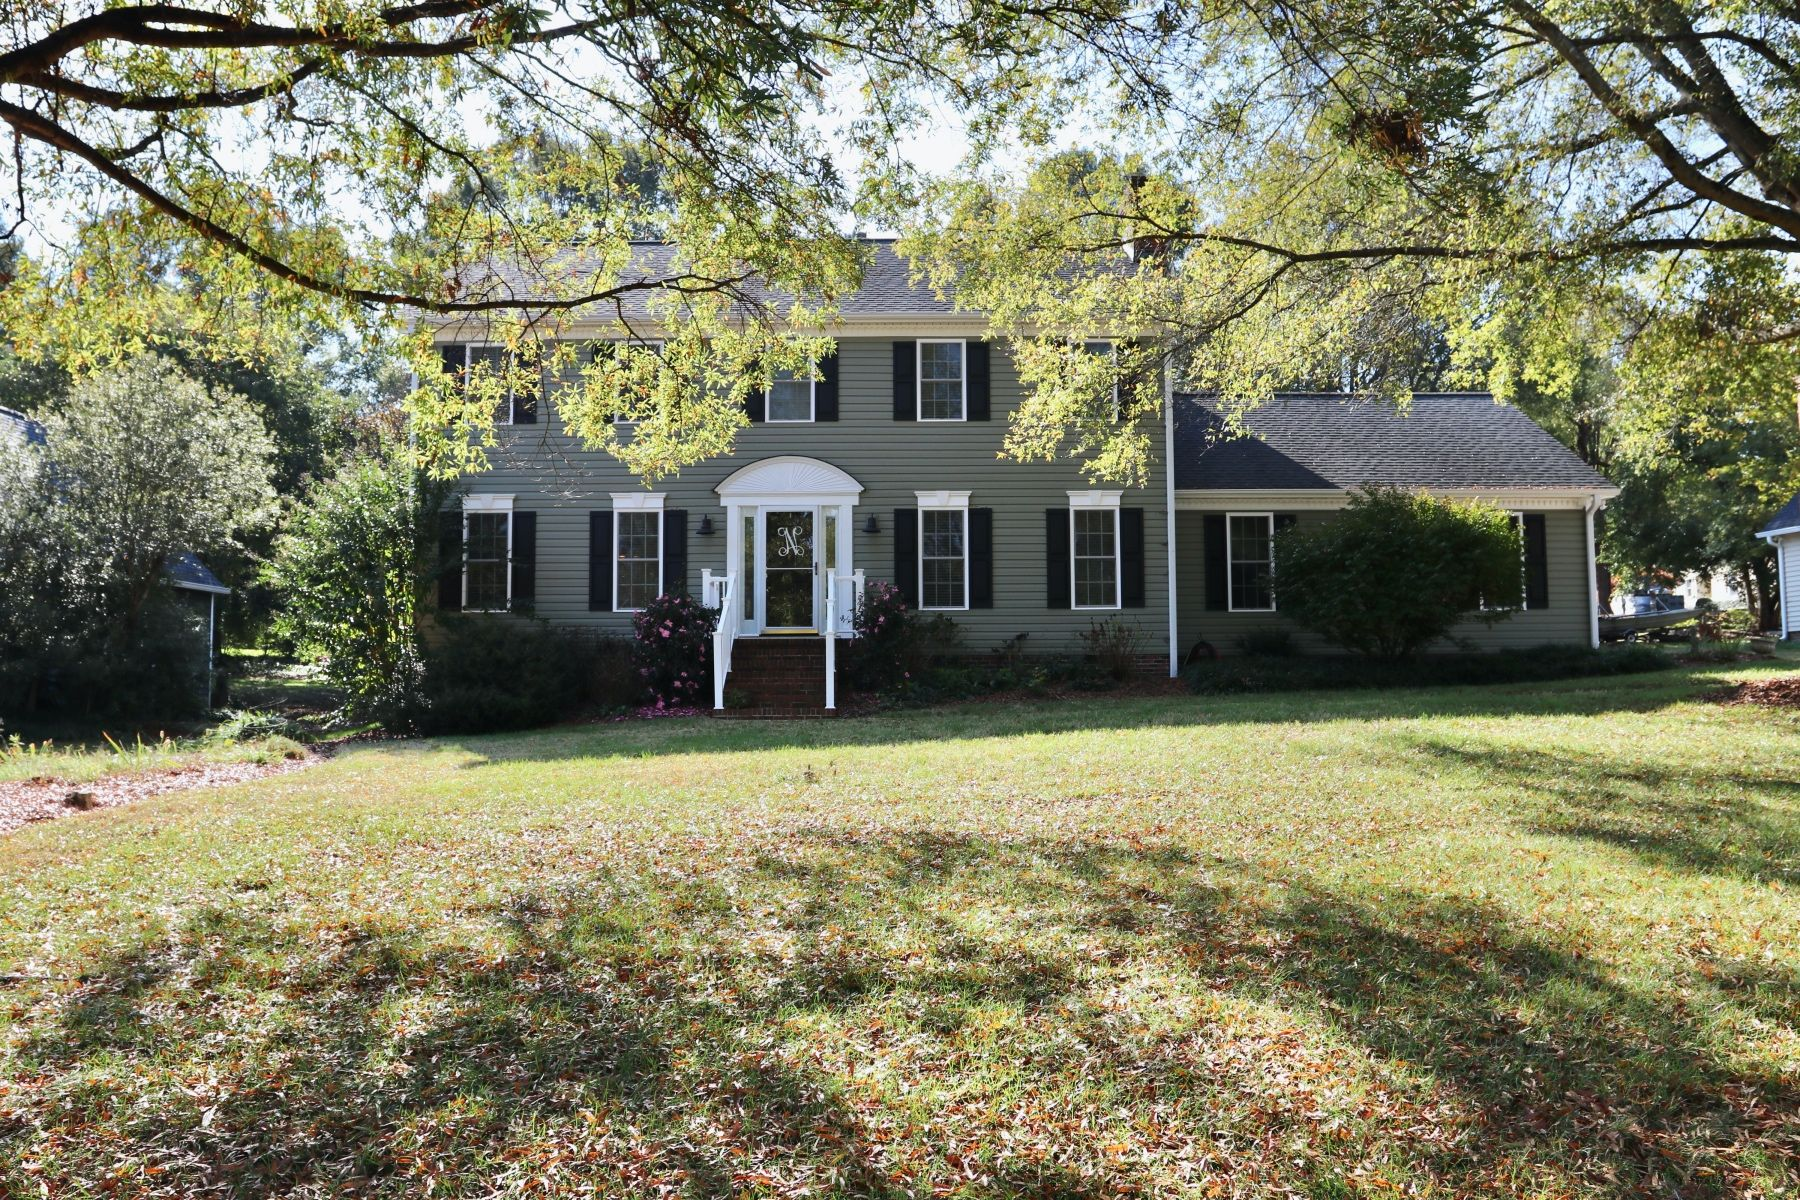 For Sale In Burlington Nc Colonial House Realty Home